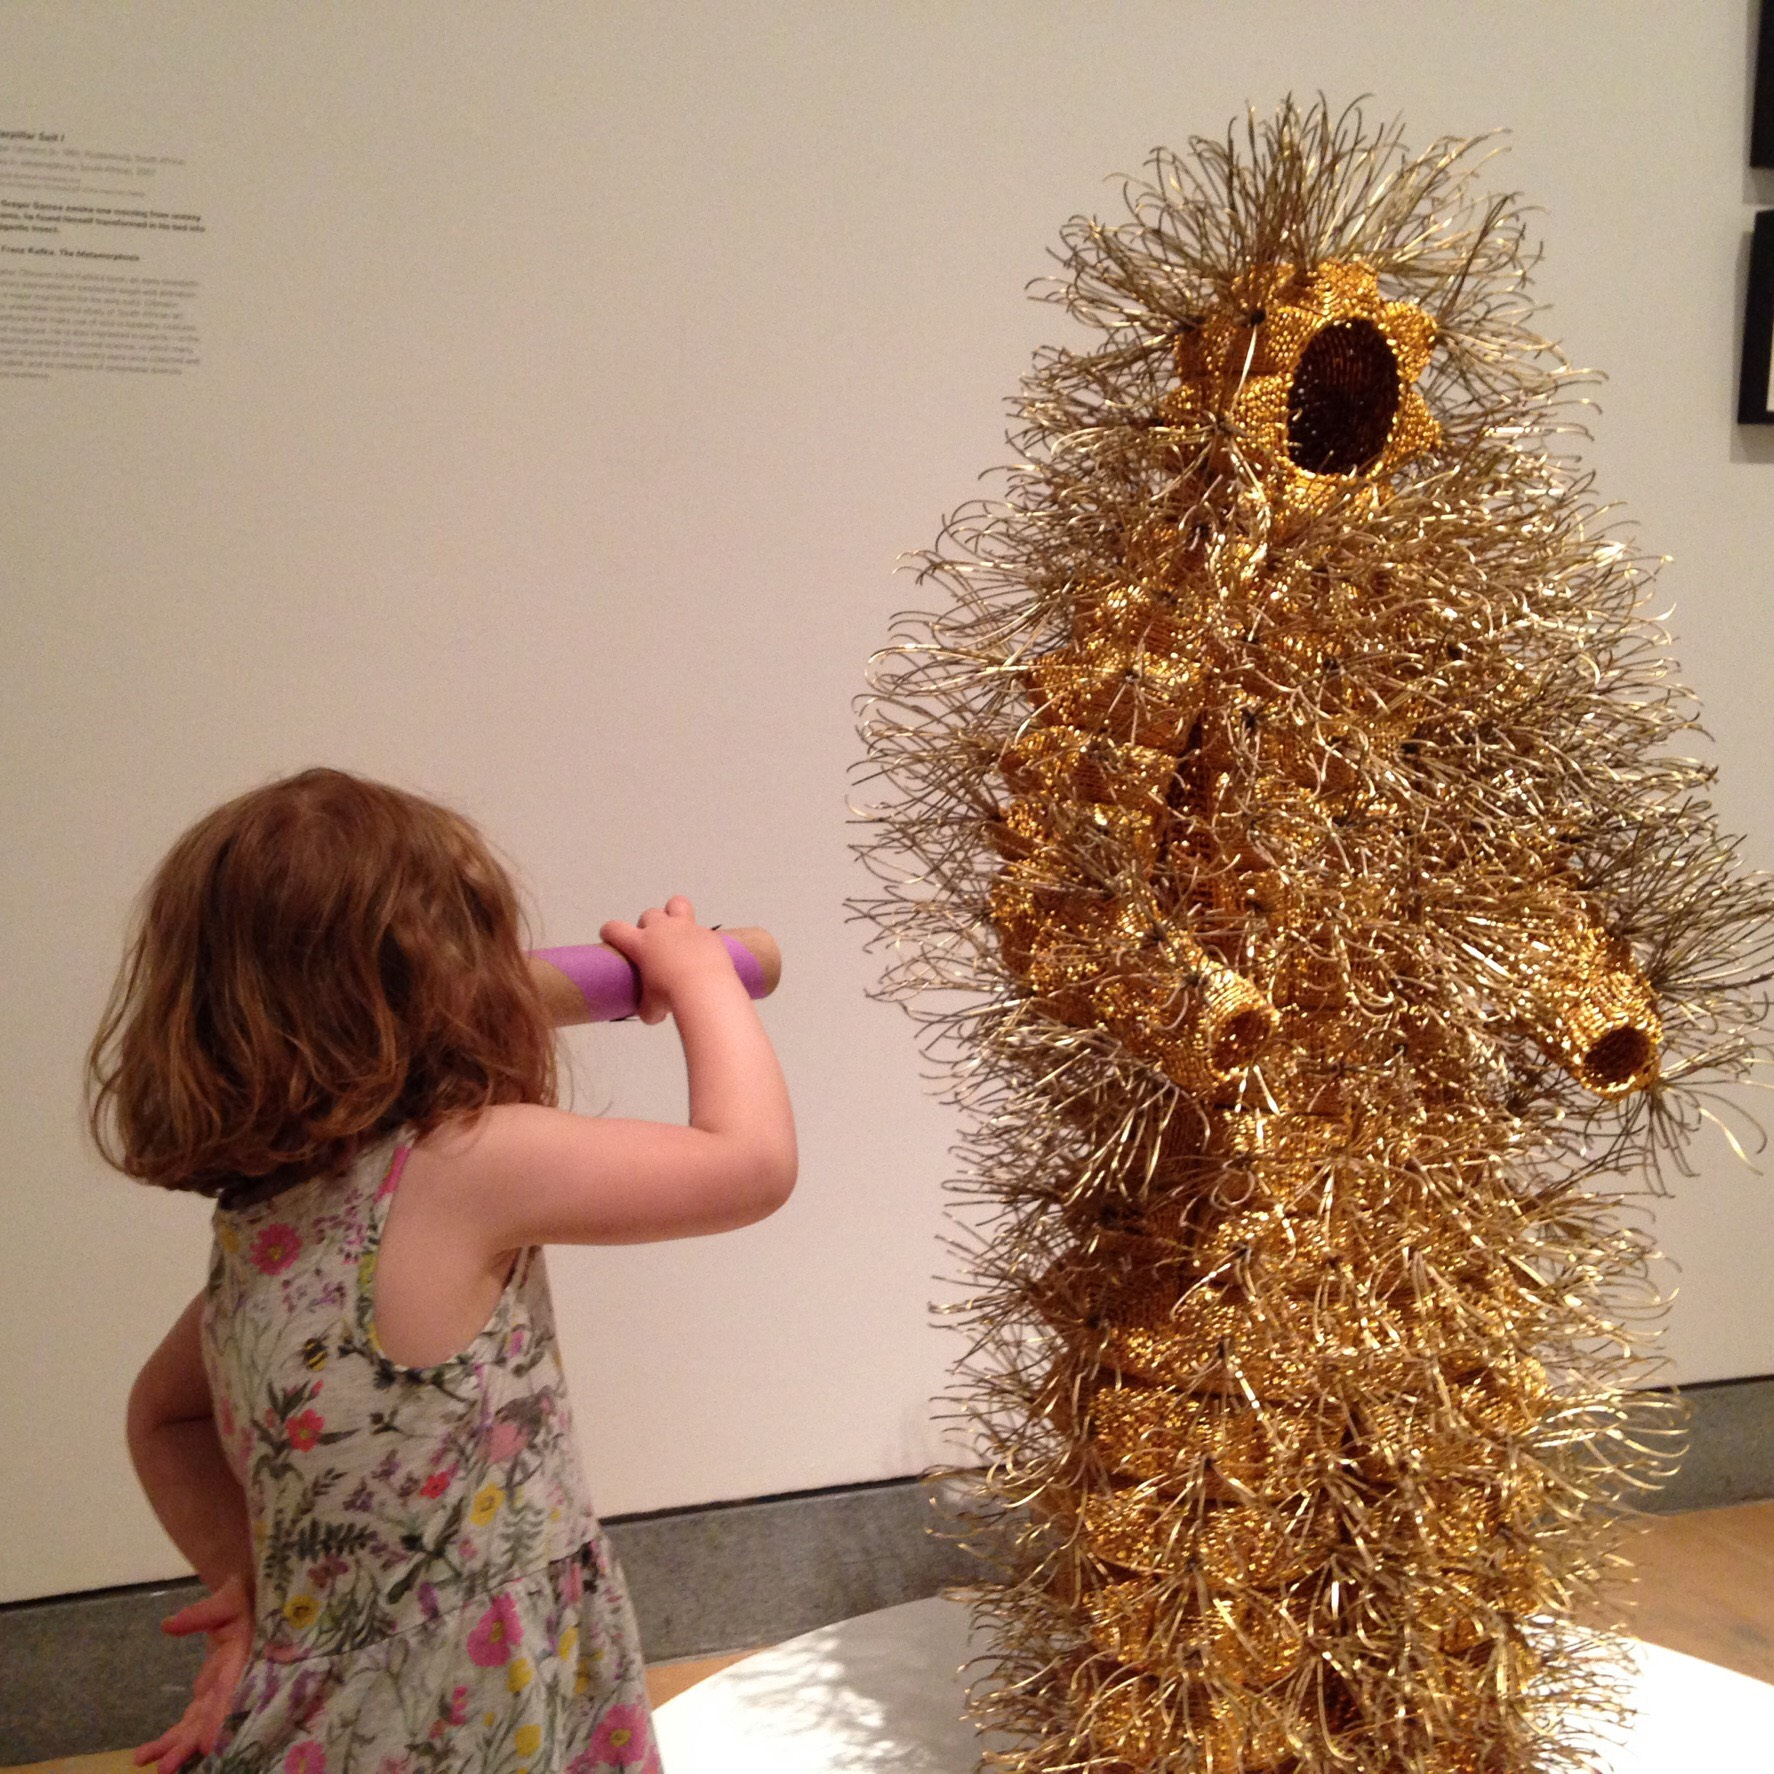 Looking closely at the Brooklyn Museum.